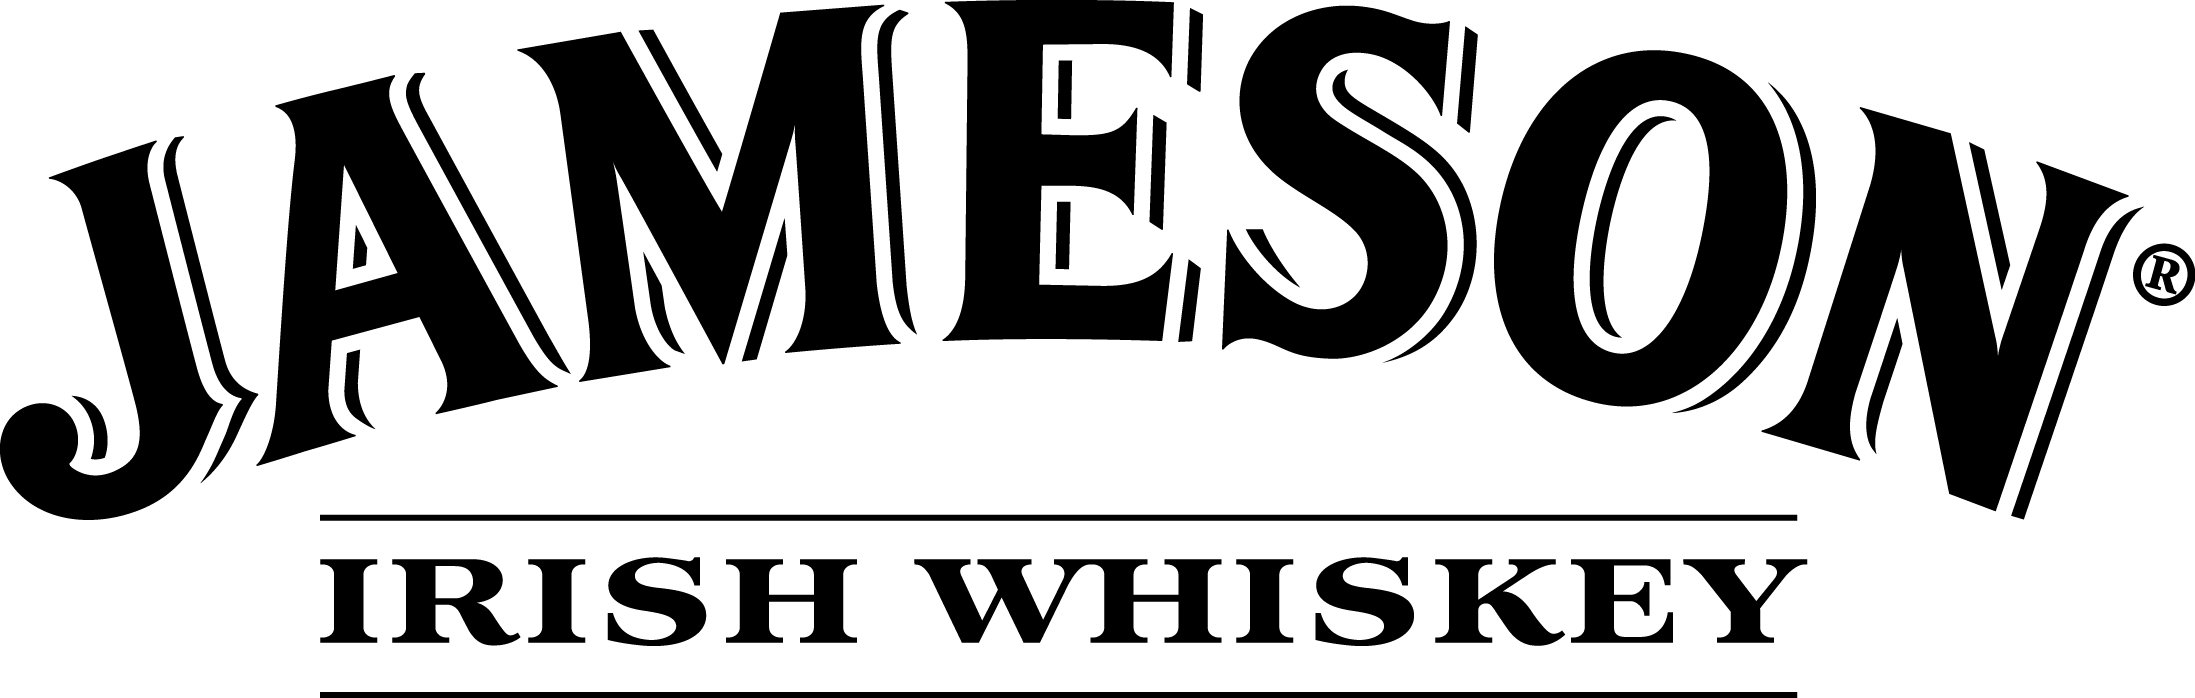 Image result for jameson logo